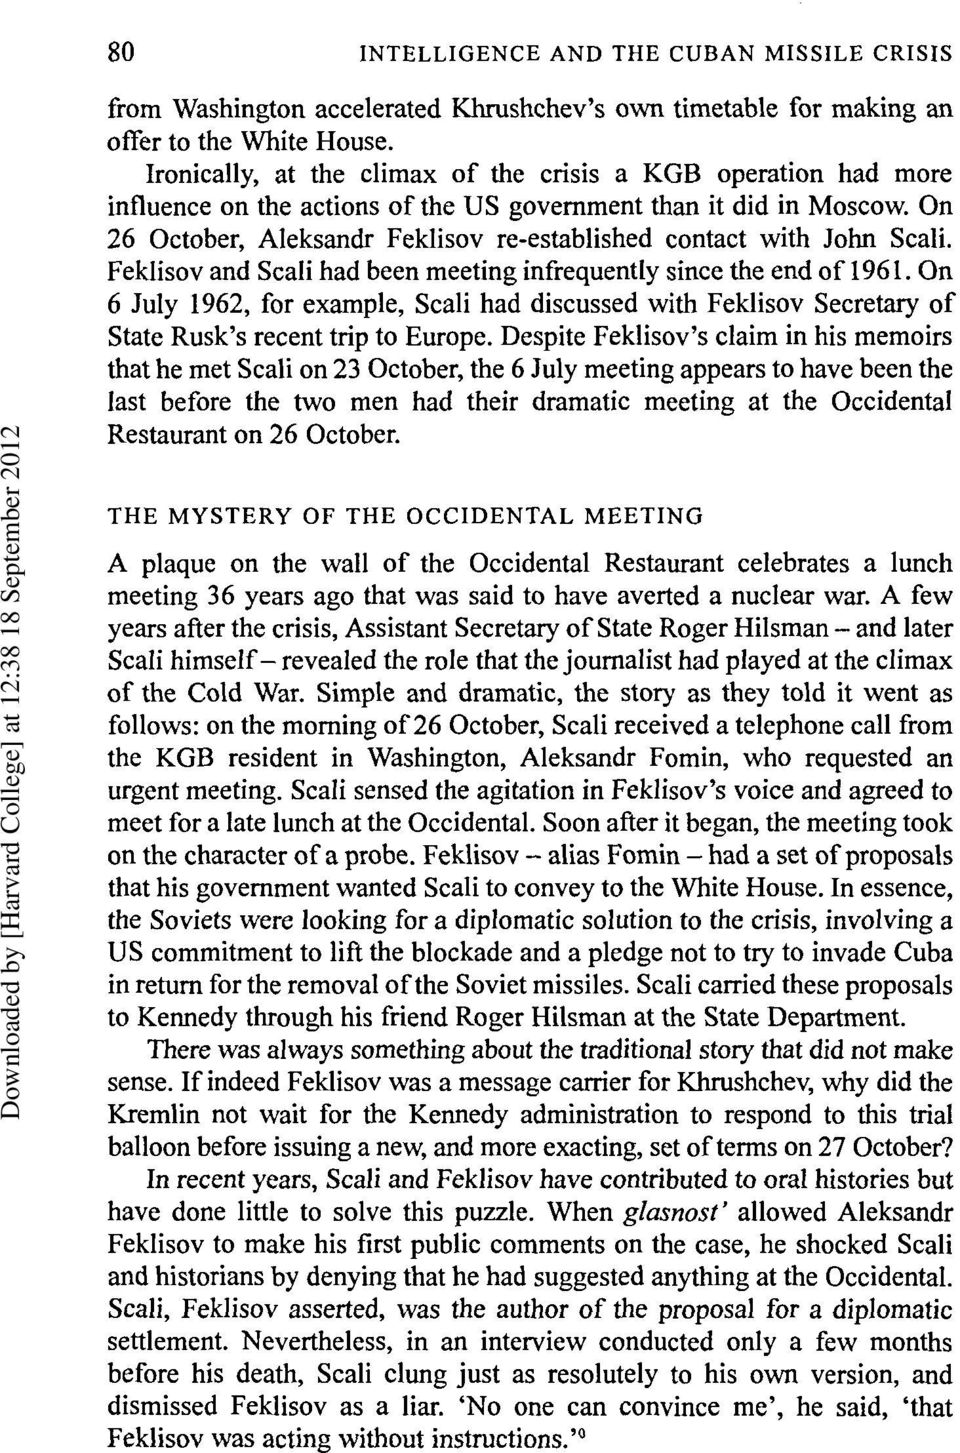 On 26 October, Aleksandr Feklisov re-established contact with John Scali. Feklisov and Scali had been meeting infrequently since the end of 1961.